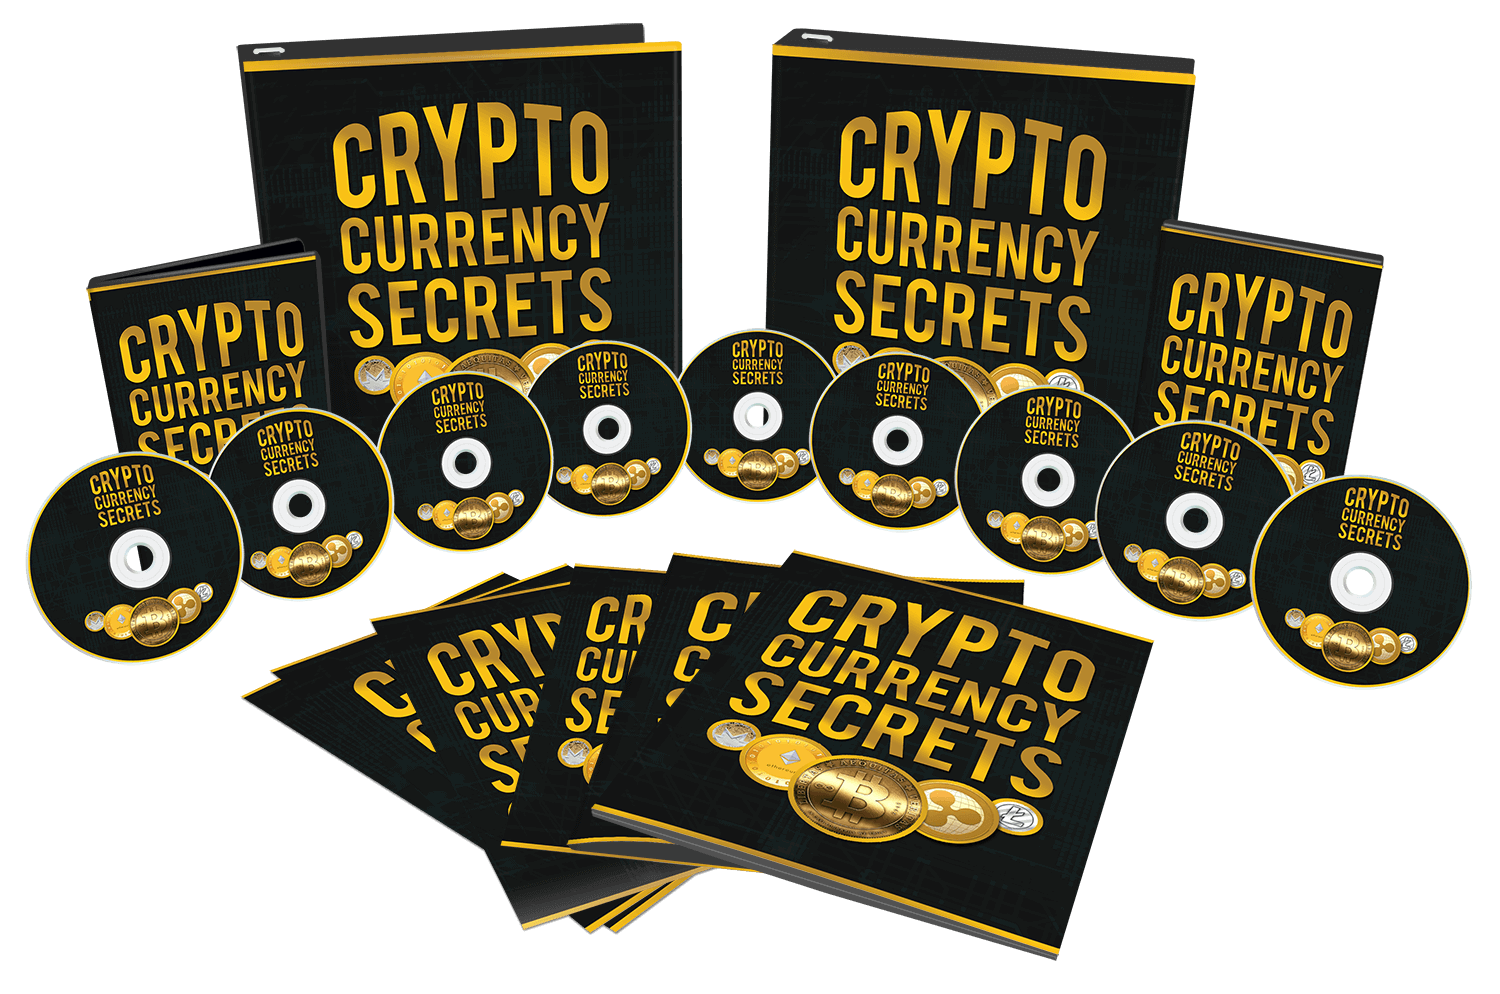 Crypto Currency Secrets